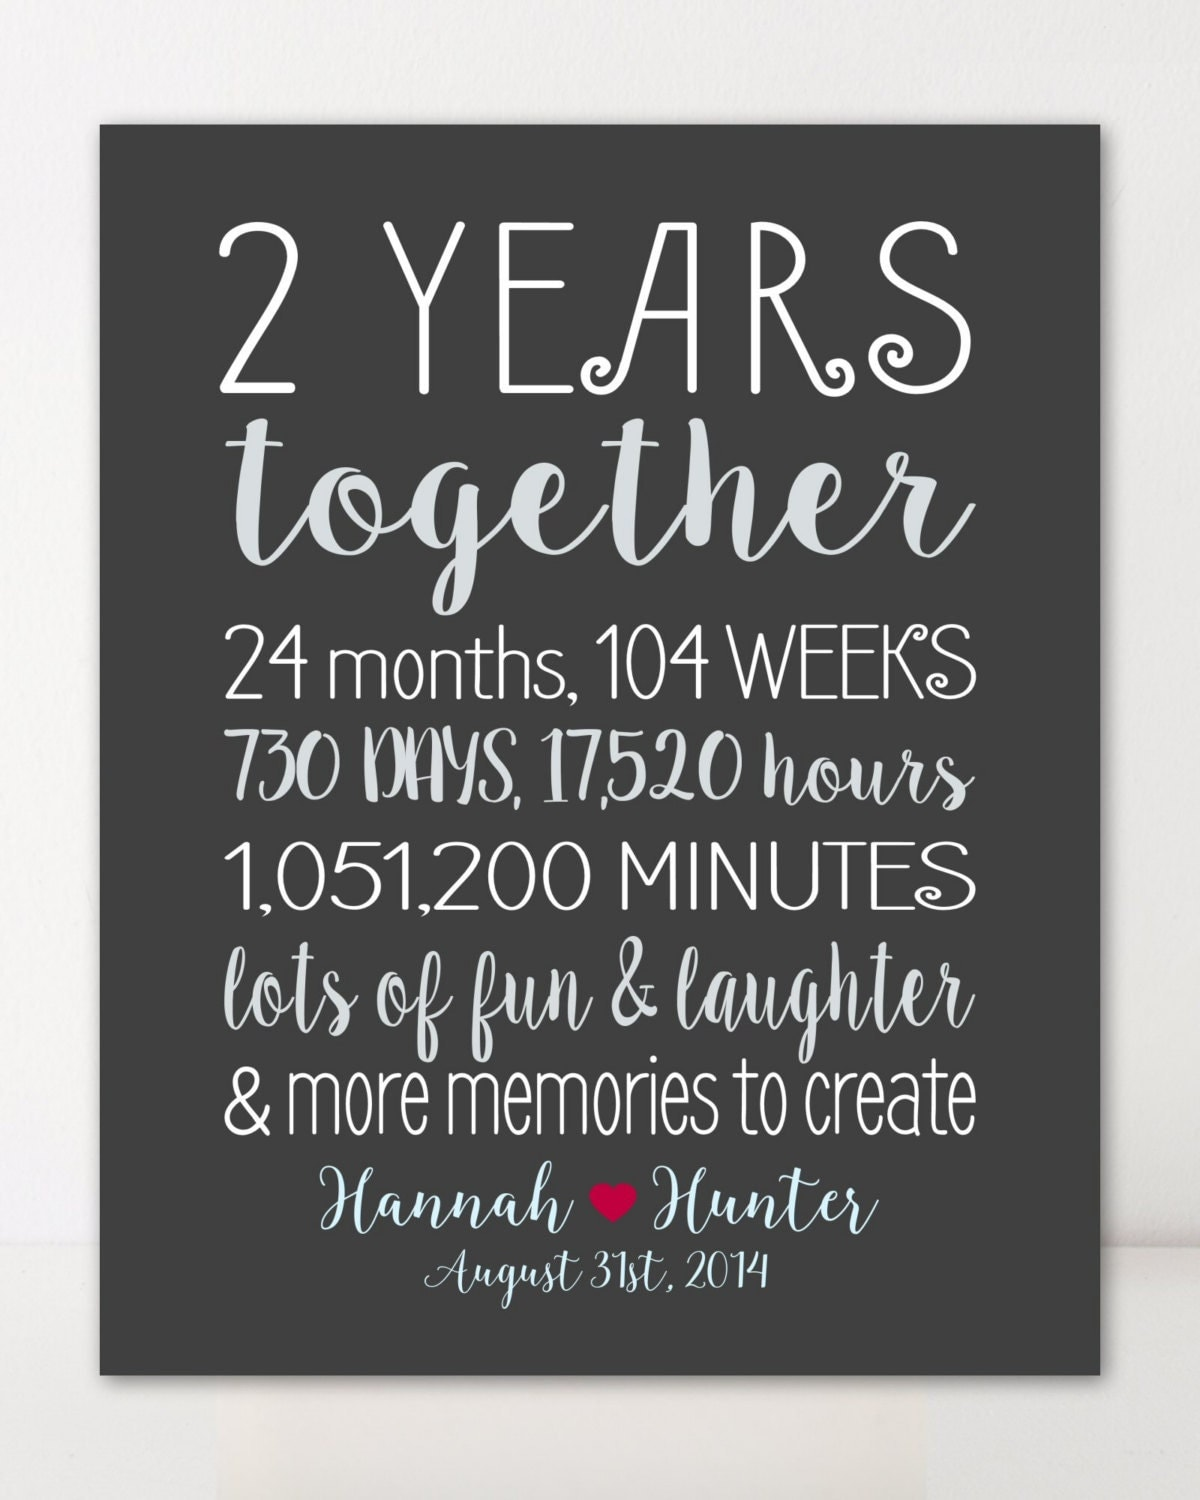 One Month Before Wedding Quotes: 2 Year Anniversary Gifts For Boyfriend Gift For Him